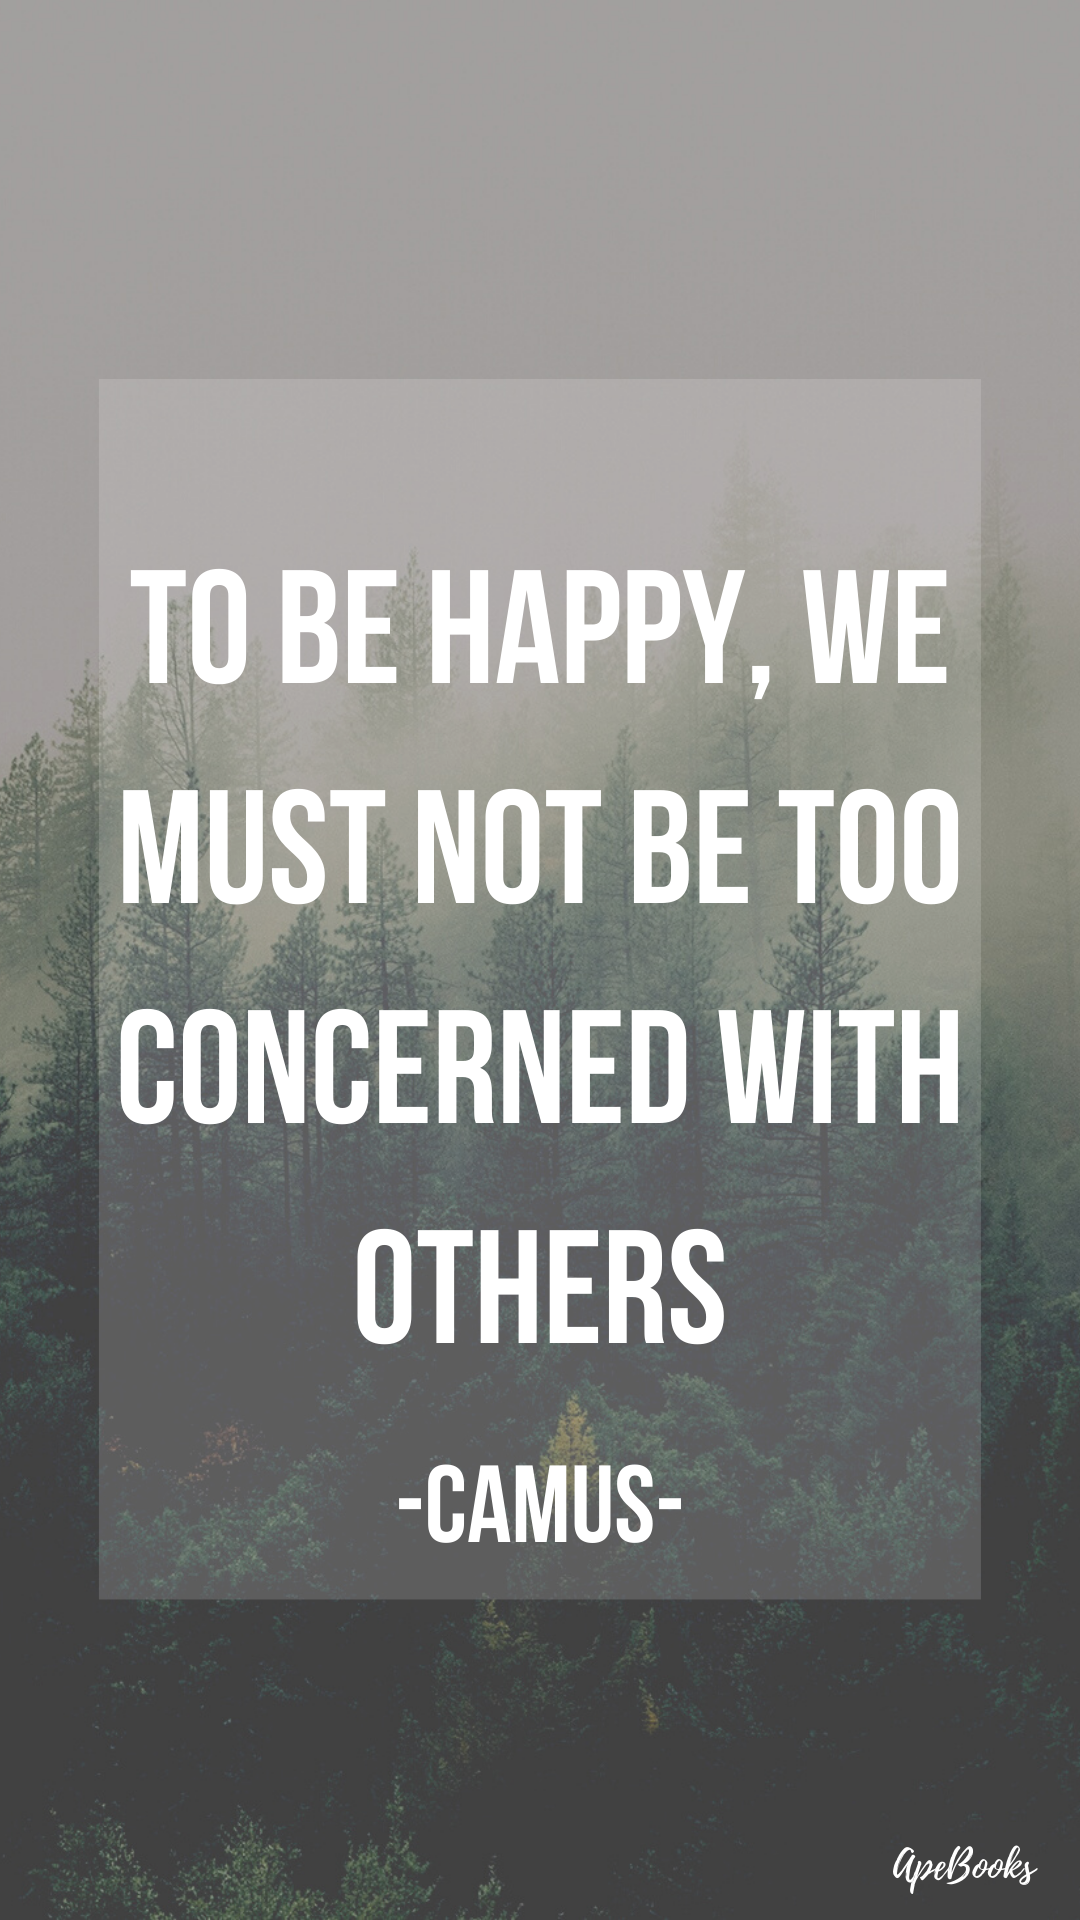 """To be happy, we must not be too concerned with others"" -Albert Camus- [1080×1920]"